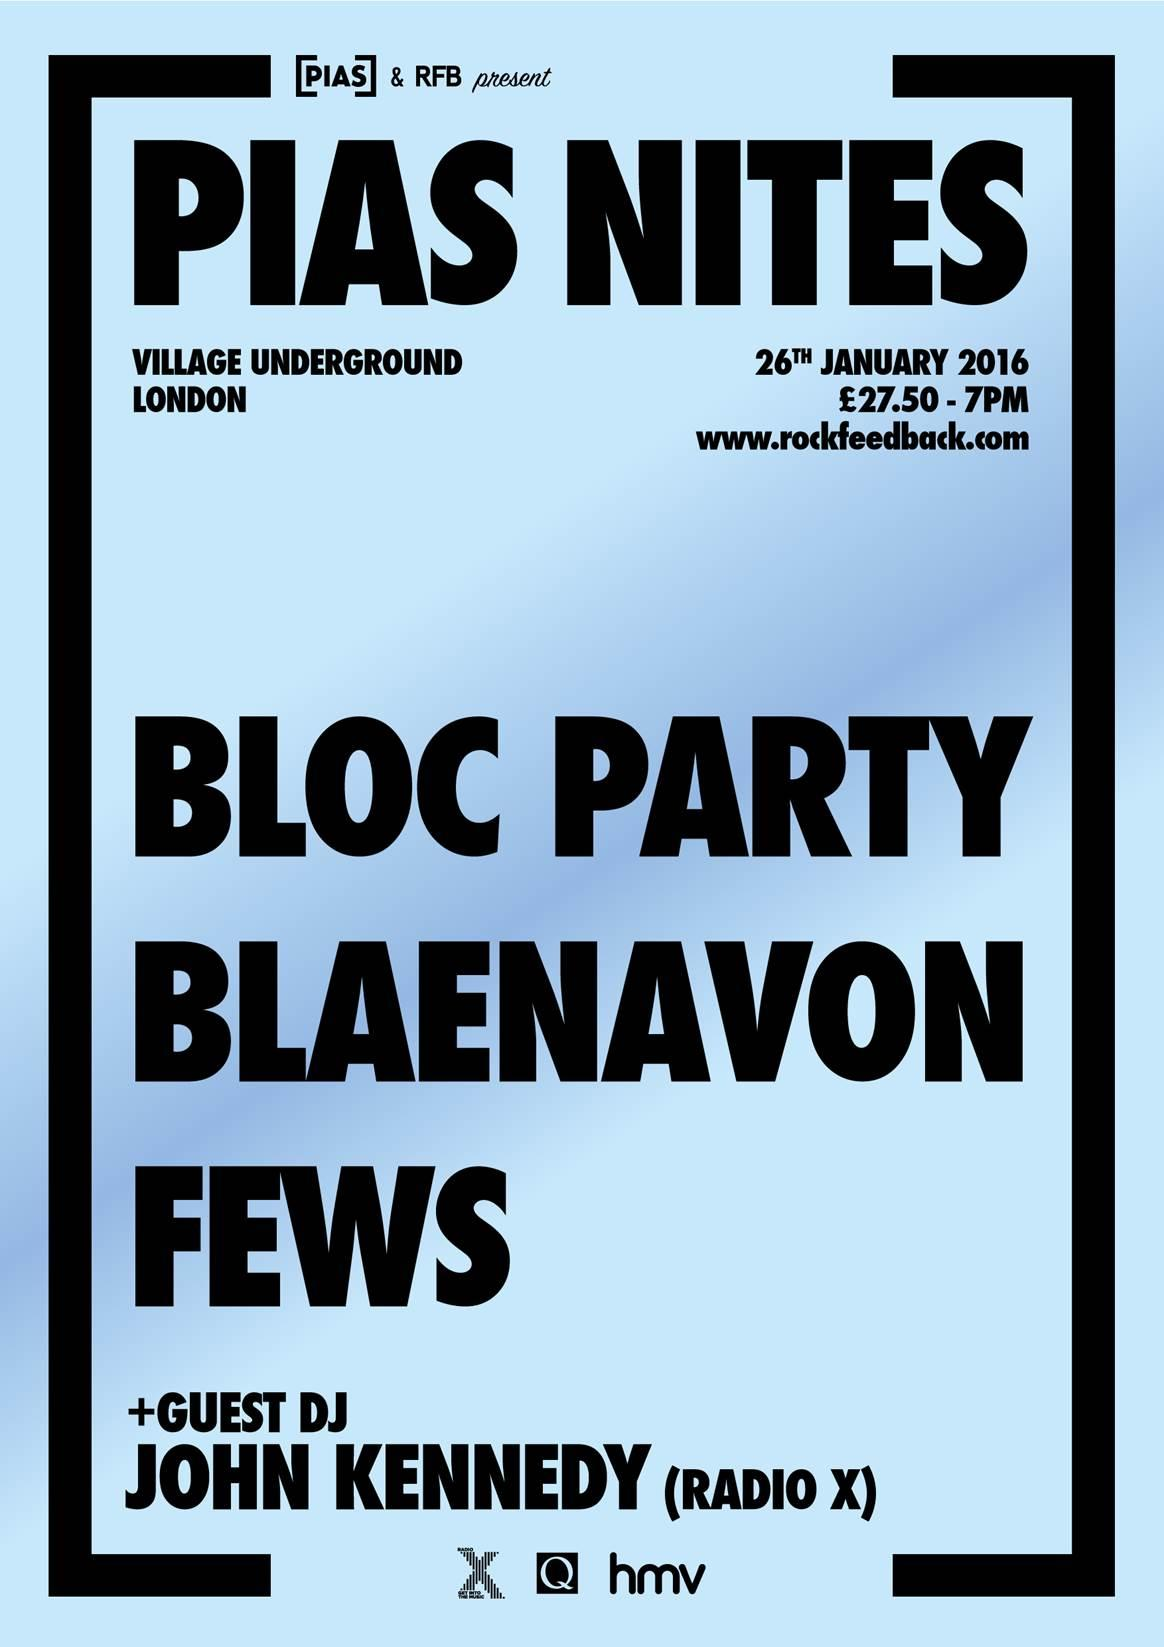 Bloc Party, TOY and Oscar to play [PIAS] Nites 2016